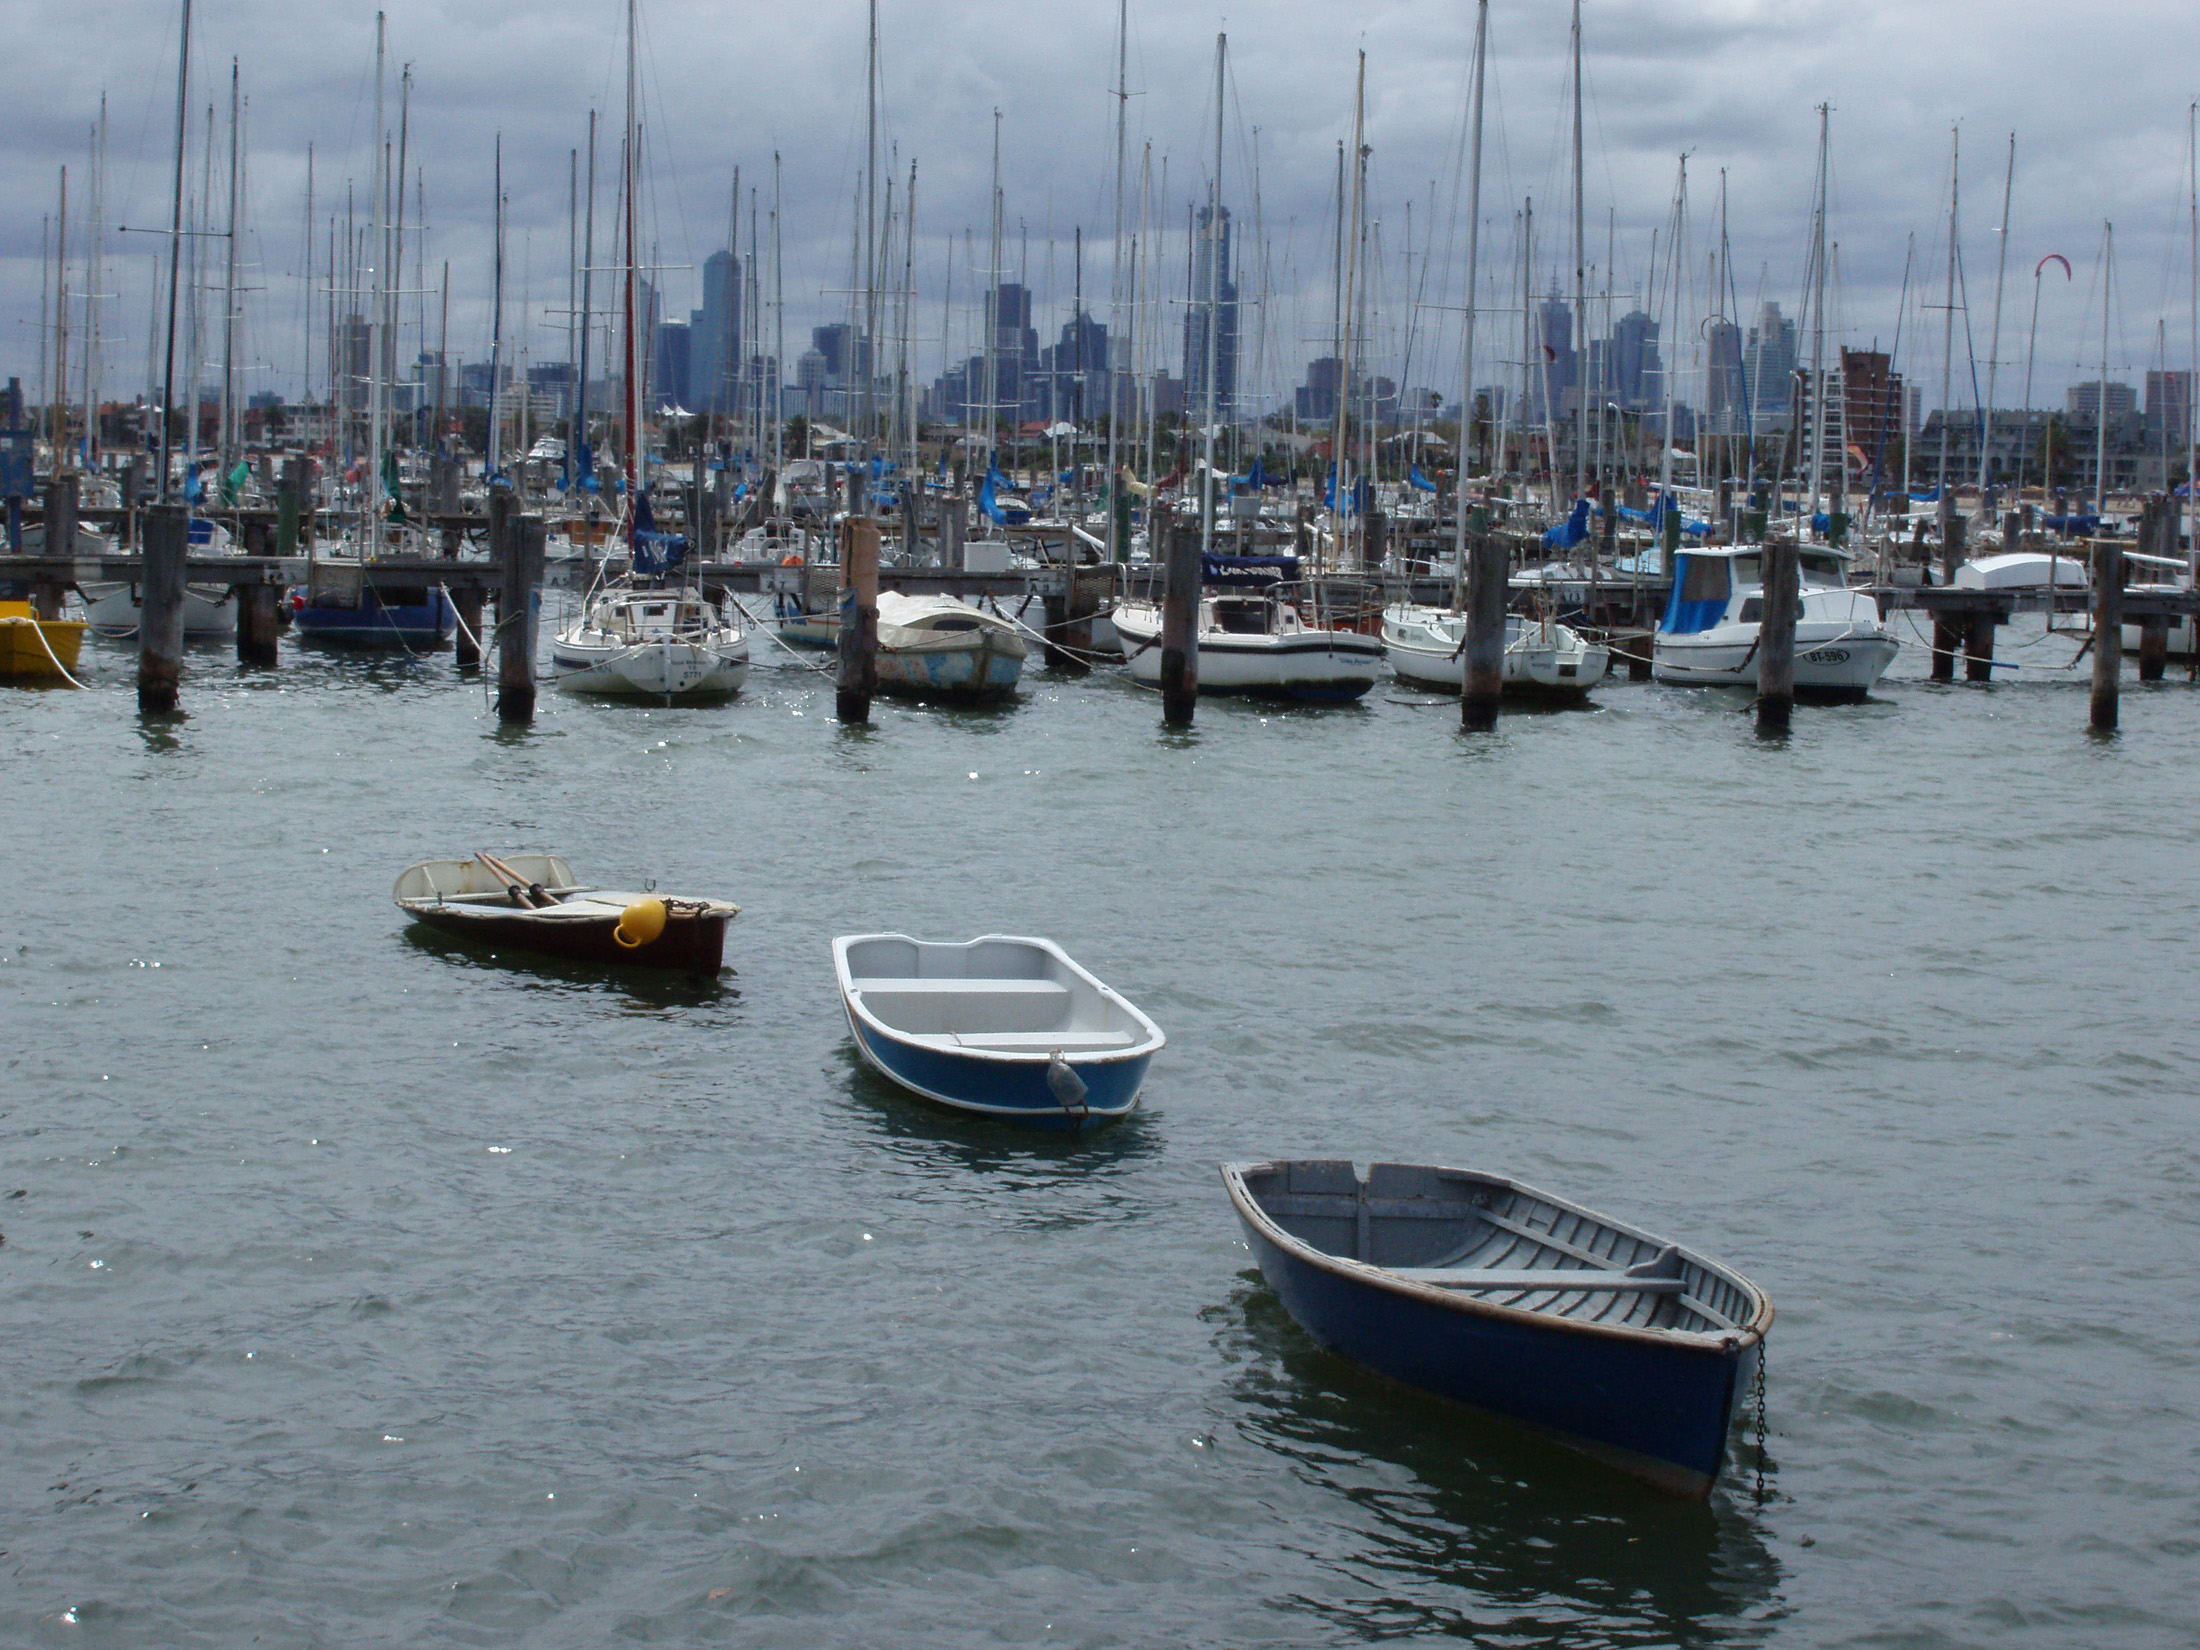 Small Vintage Boats Floating at Beautiful St Kilda Marina in Melbourne, Australia.